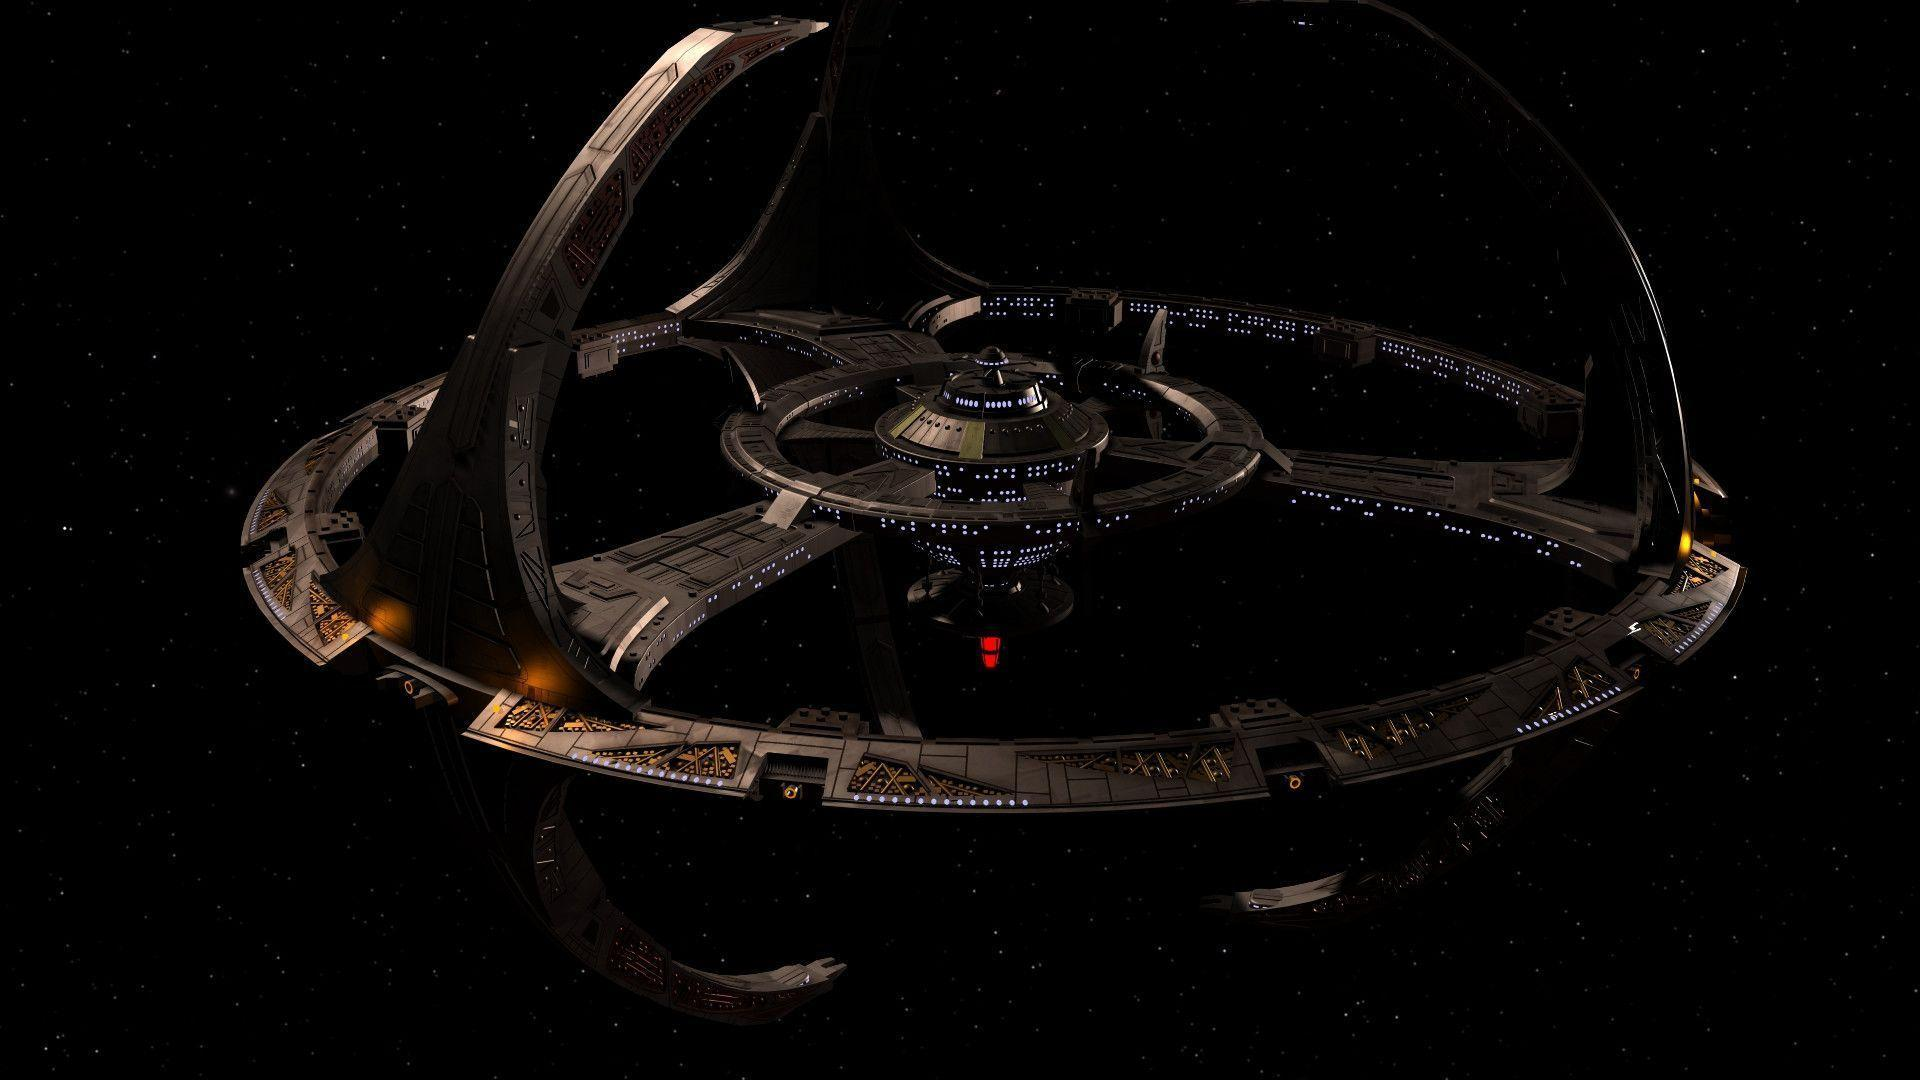 Star Trek Deep Space Nine: 20 Years by enterprisedavid